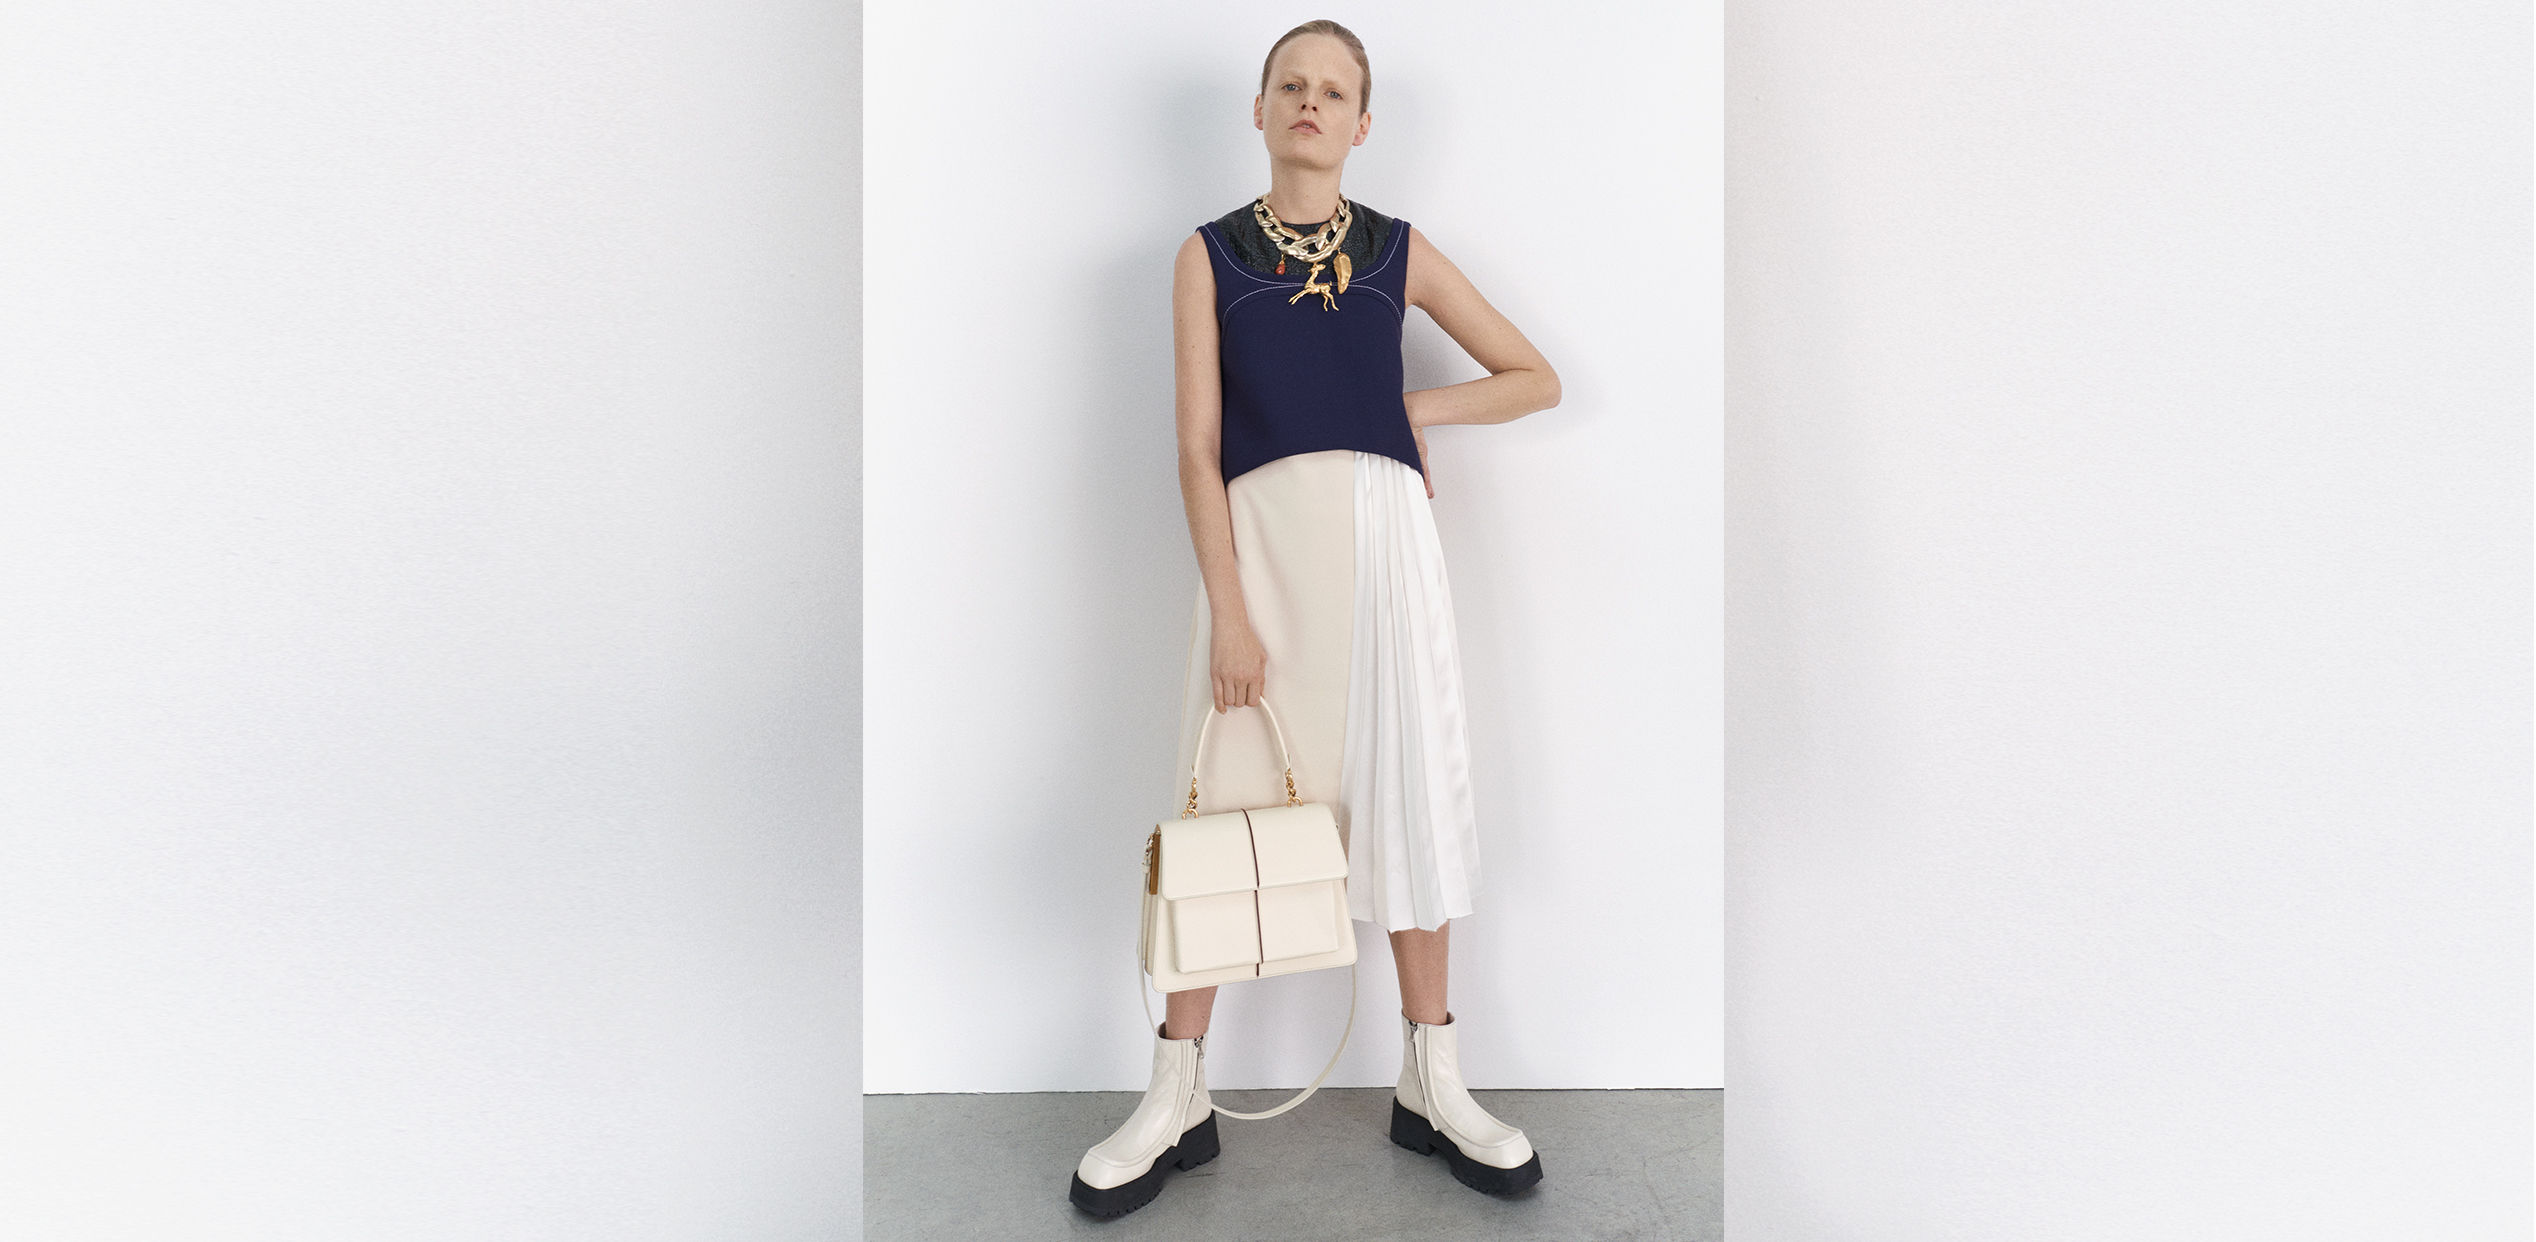 b1385abb WOMEN'S READY-TO-WEAR Discover the dresses from the Prefall 2019  collection. SHOP